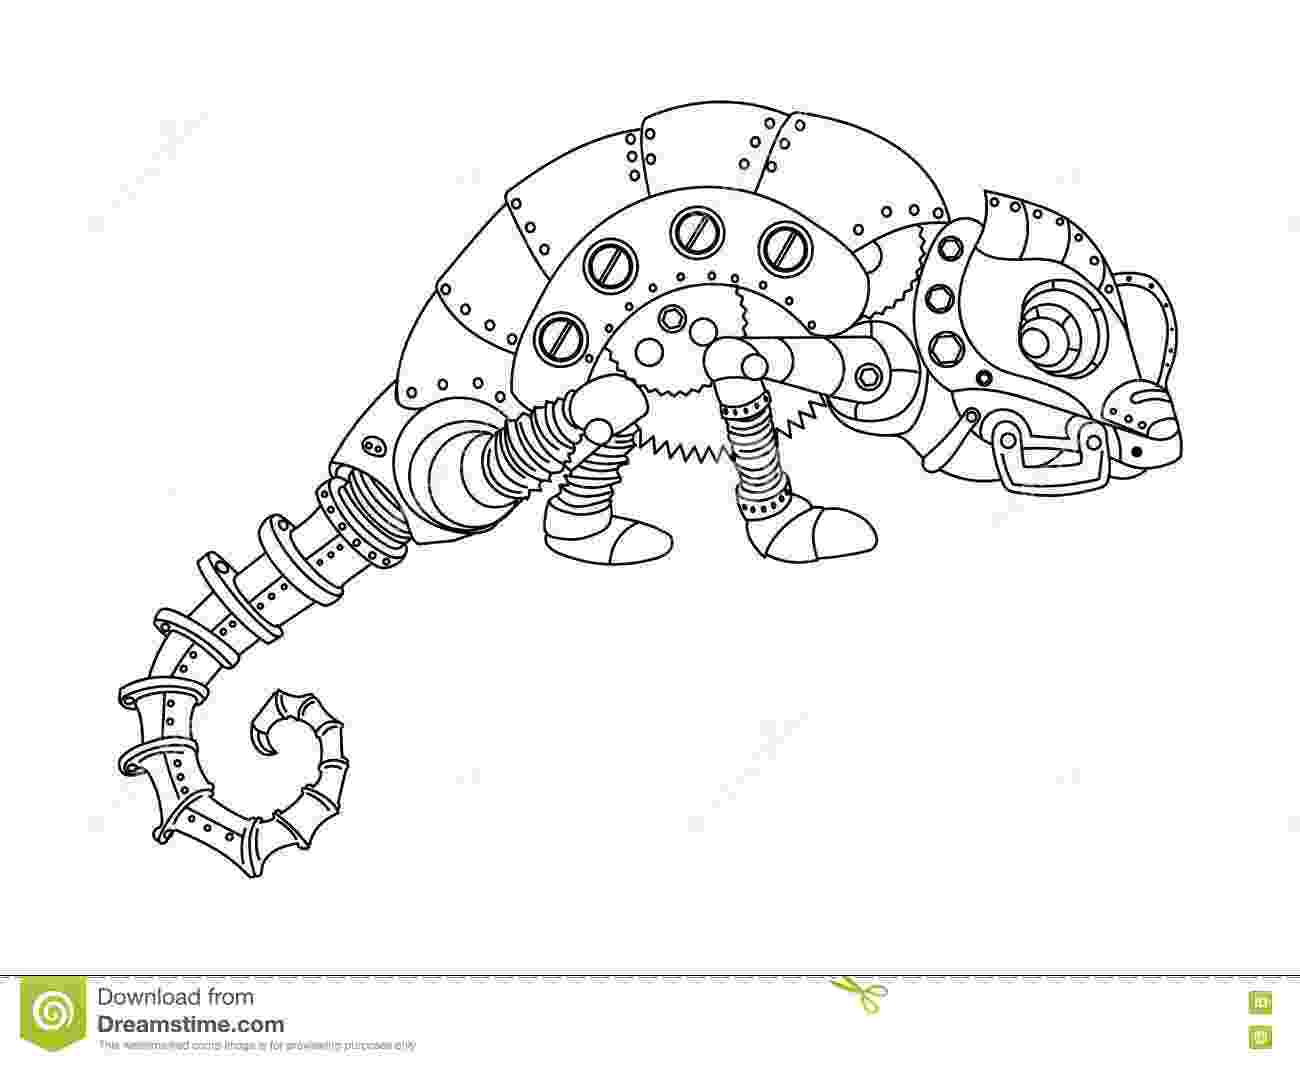 animal mechanicals coloring sheets mechanical bear animal engraving vector bear mechanical mechanicals coloring sheets animal